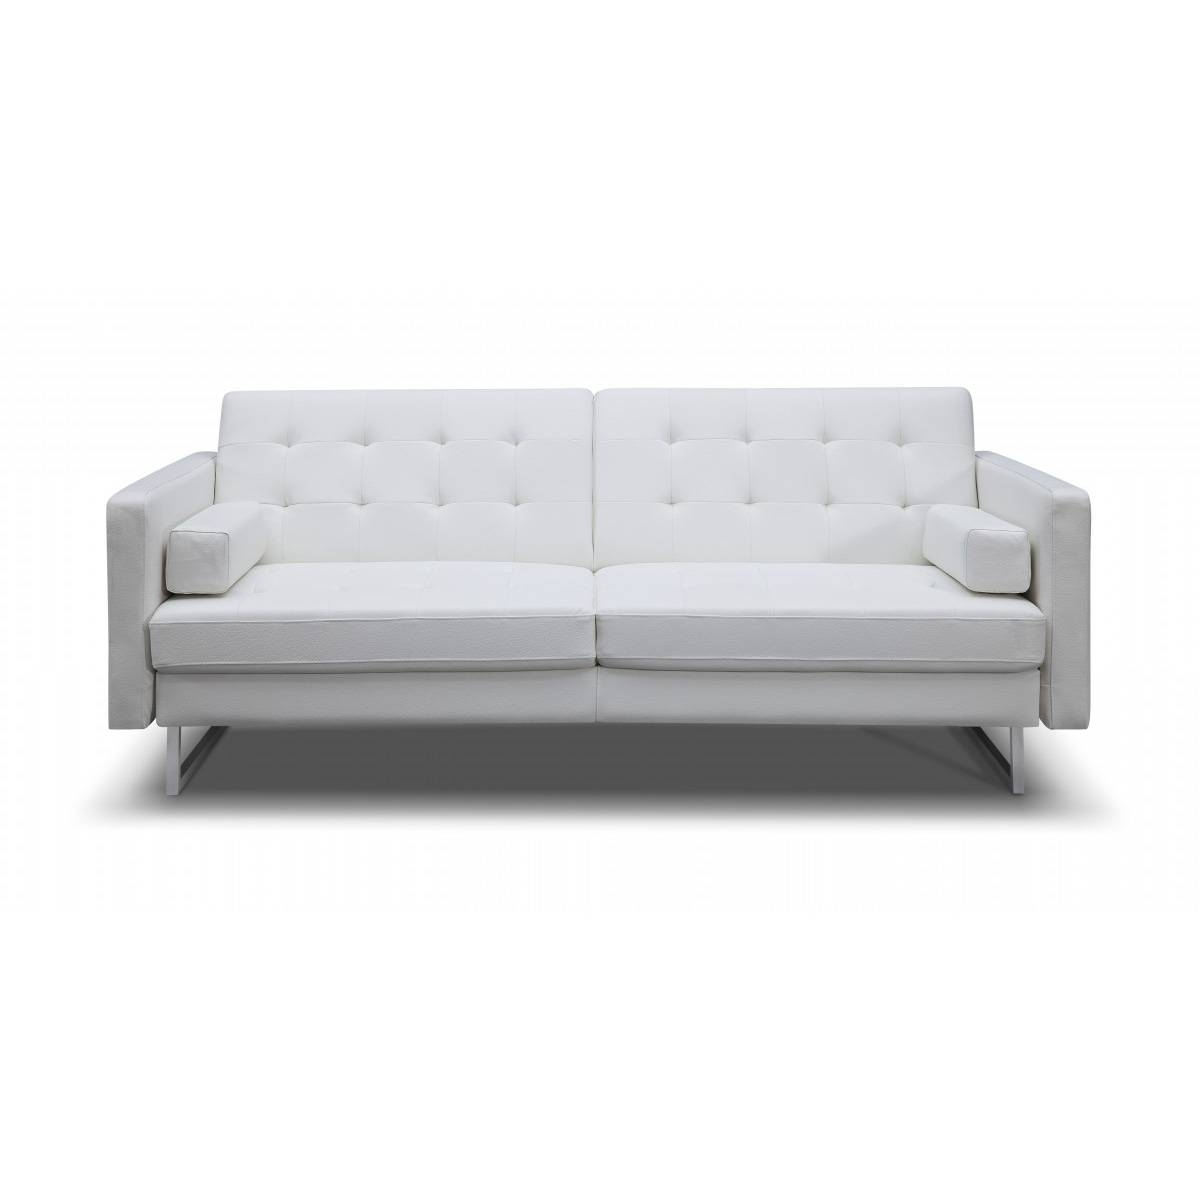 Giovanni Sofa Bed | White Faux Leather, White Line Imports in Faux Leather Sleeper Sofas (Image 10 of 15)